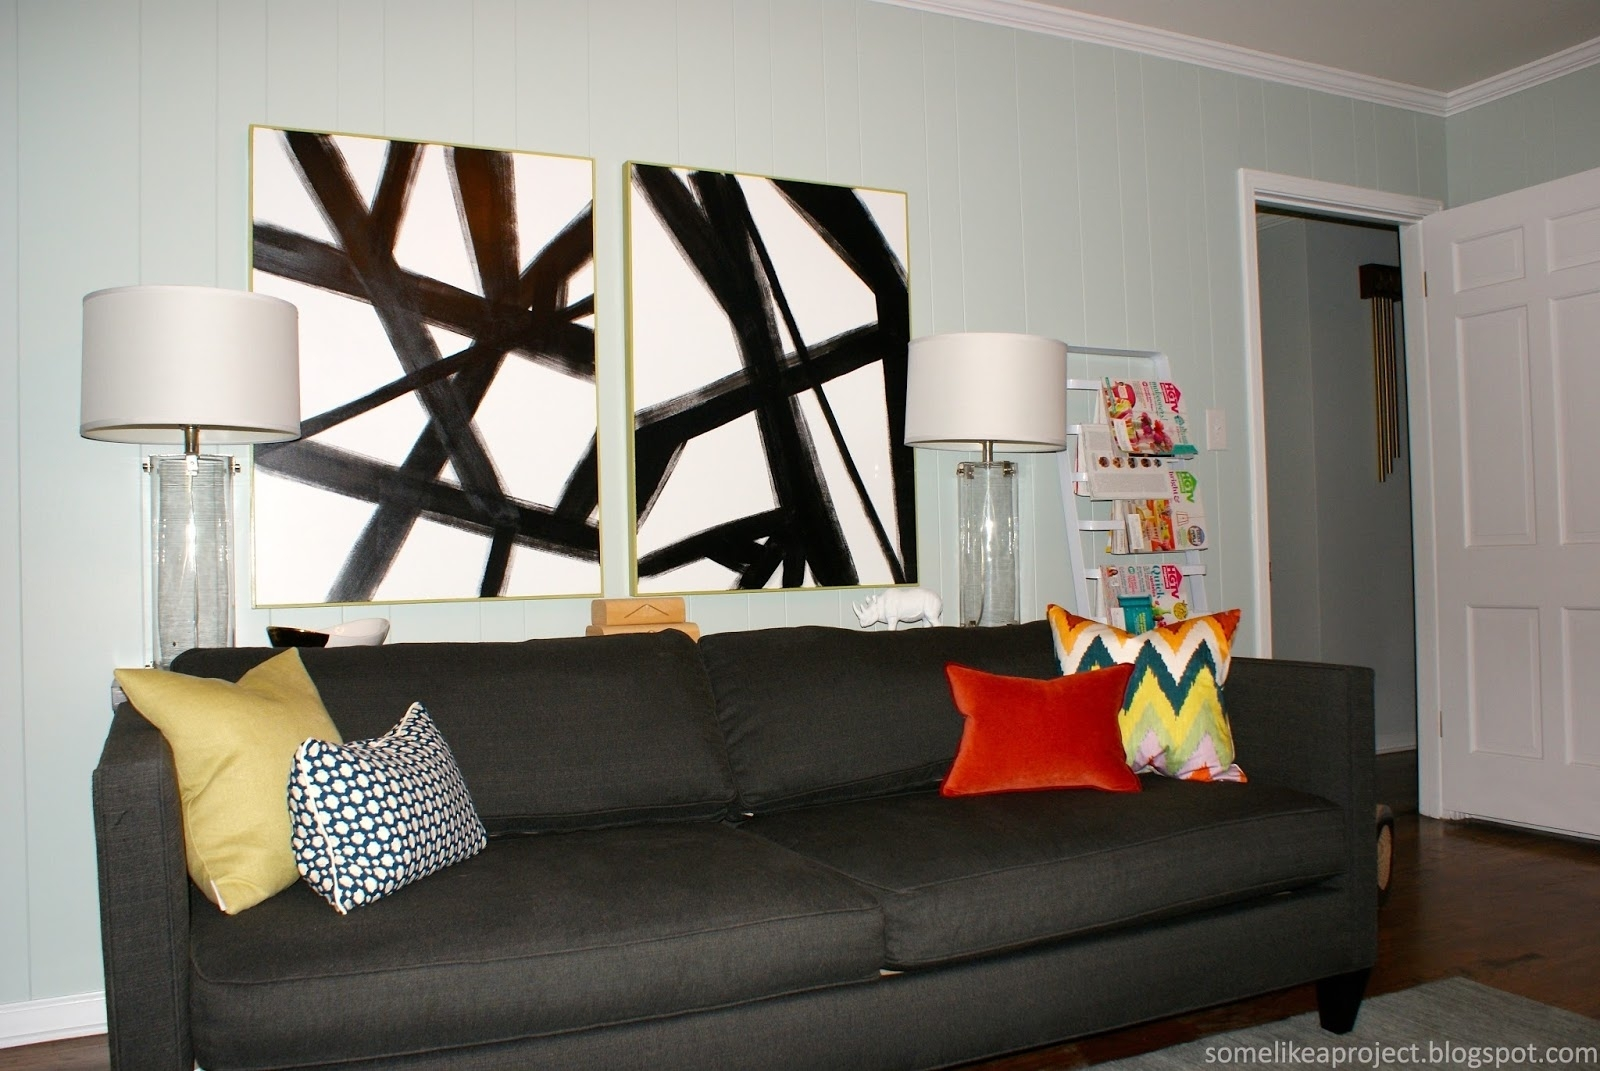 Some Like A Project: Large Diy Black & White Abstract Art In Current West Elm Abstract Wall Art (View 6 of 20)